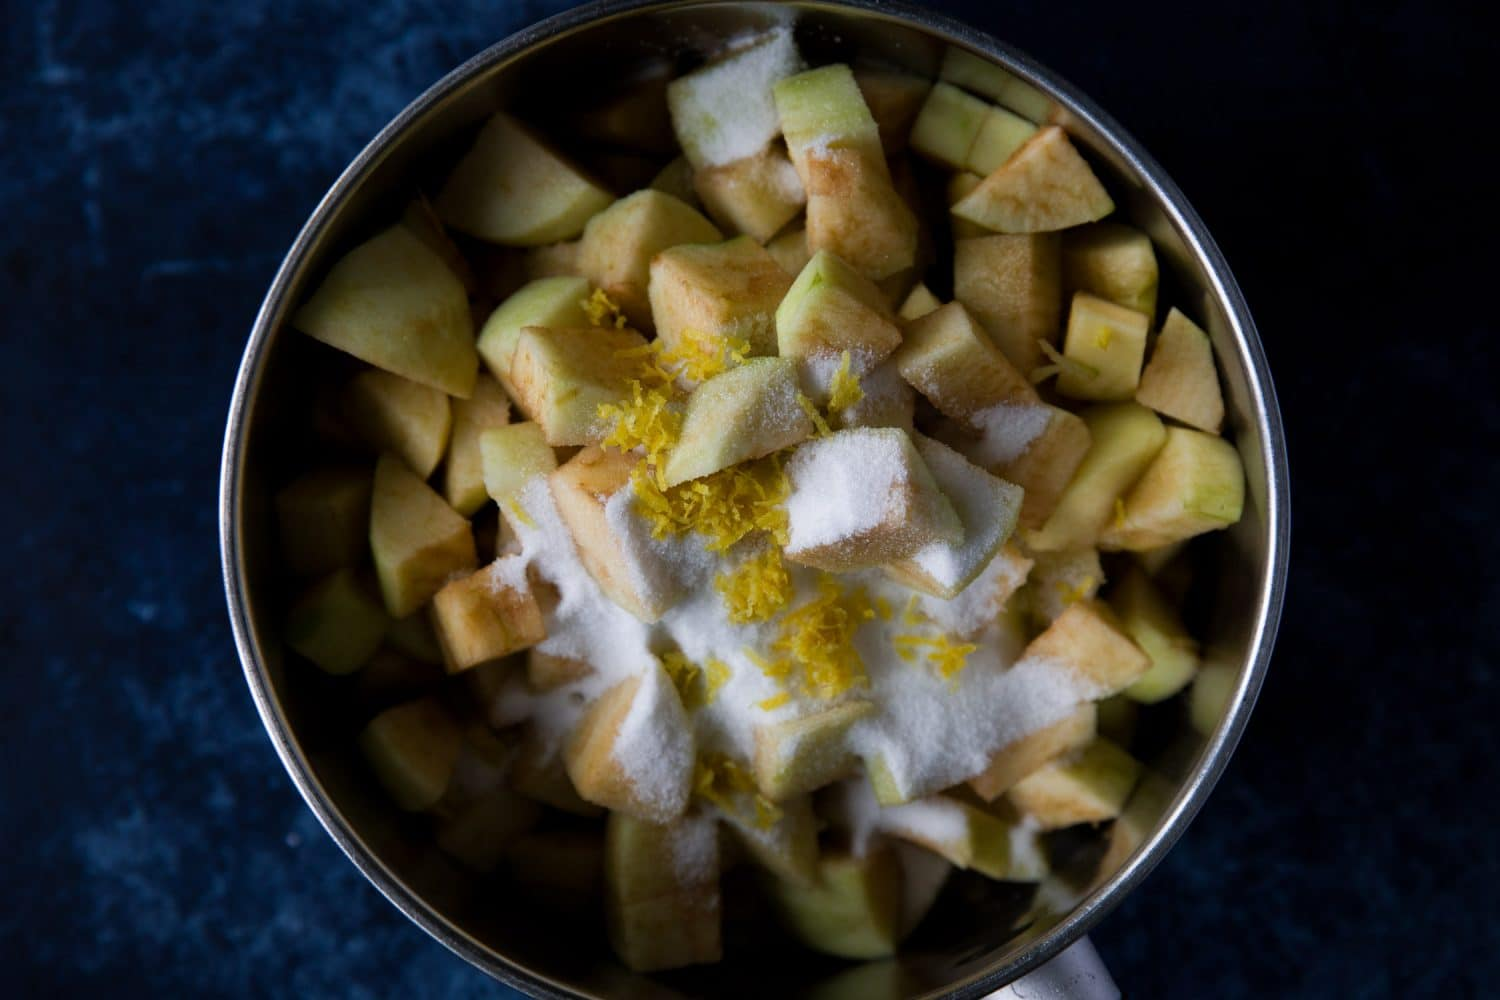 A saucepan containing apples, sugar and lemon zest.